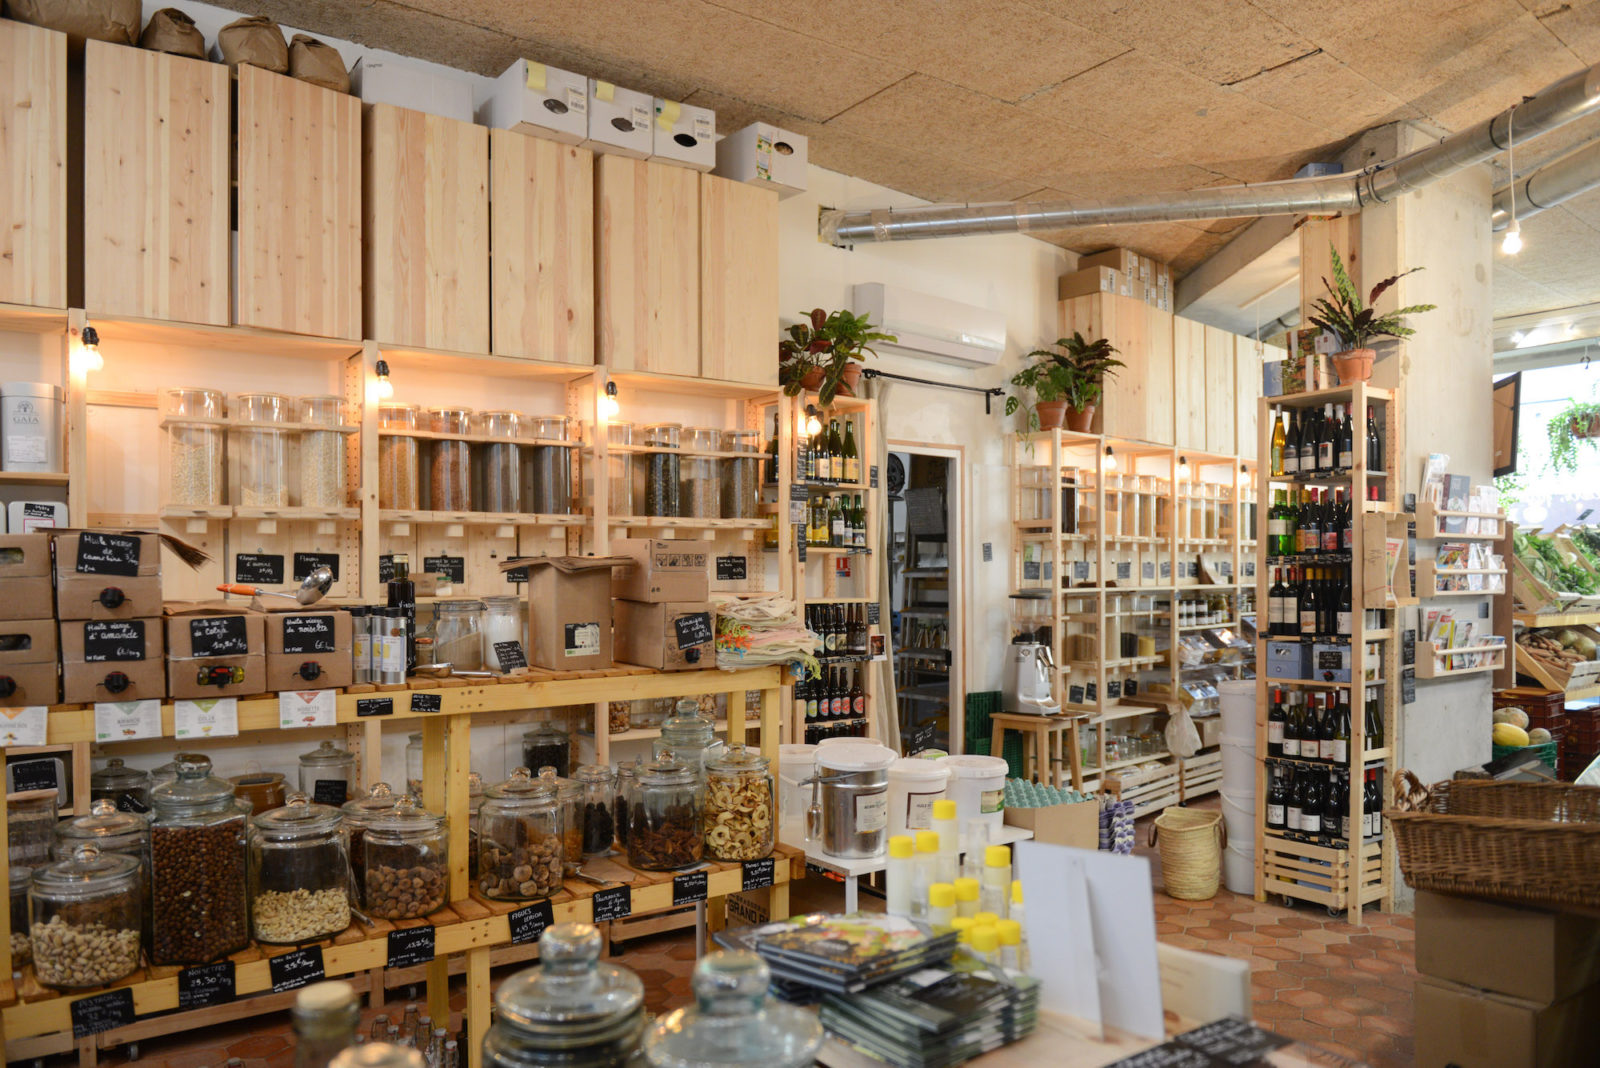 Inside L'Epicerie Kilogramme, a zero-waste, bulk-buying store in Paris, with pleasant interiors of timber shelves and cupboards of foodstuffs in jars.